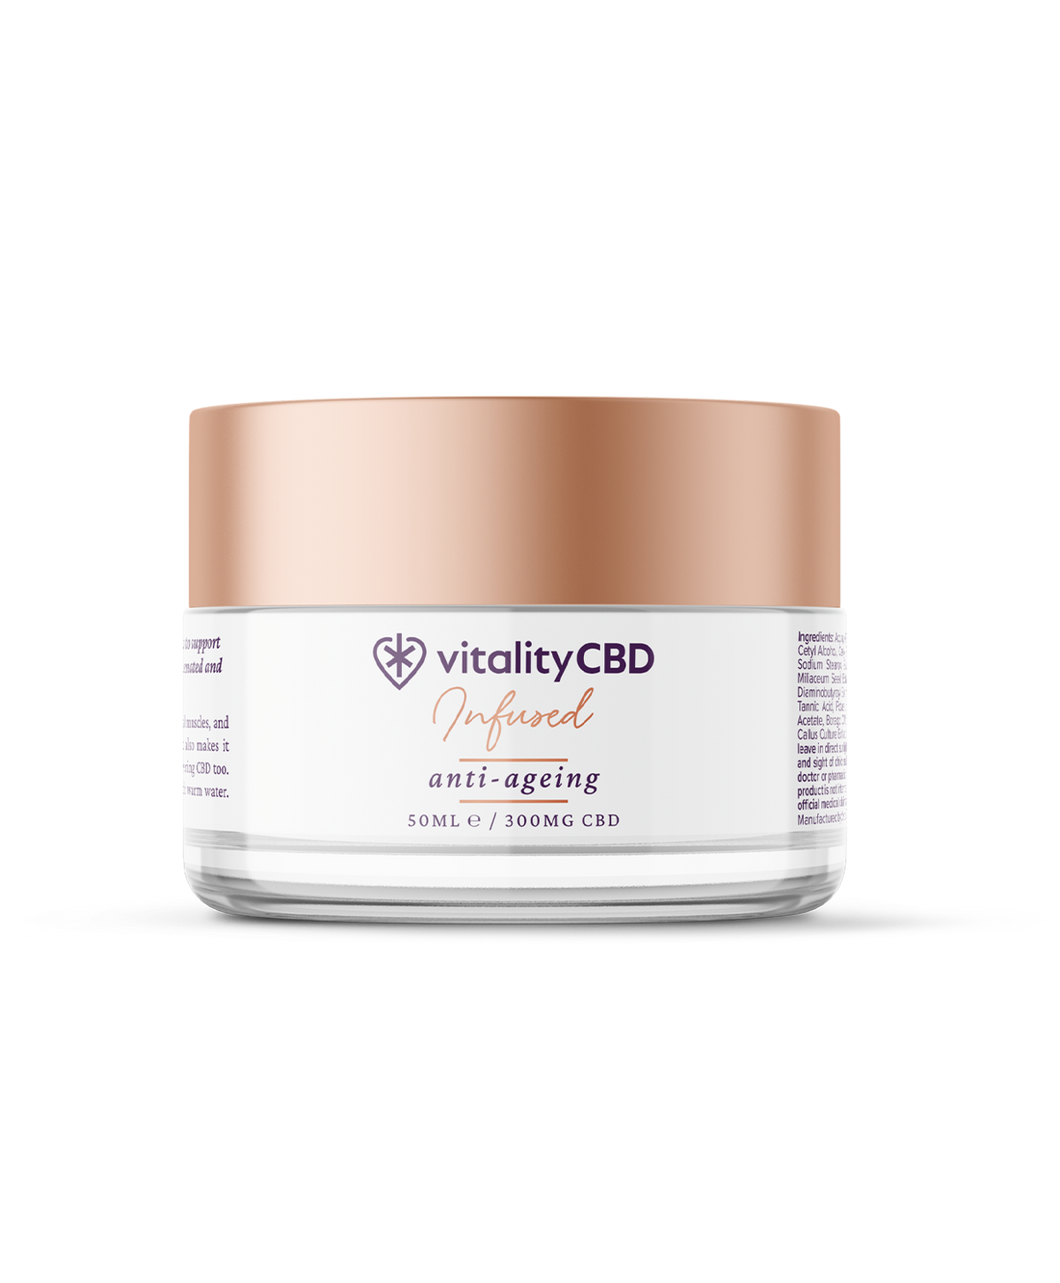 Vitality CBD Anti-ageing Cream